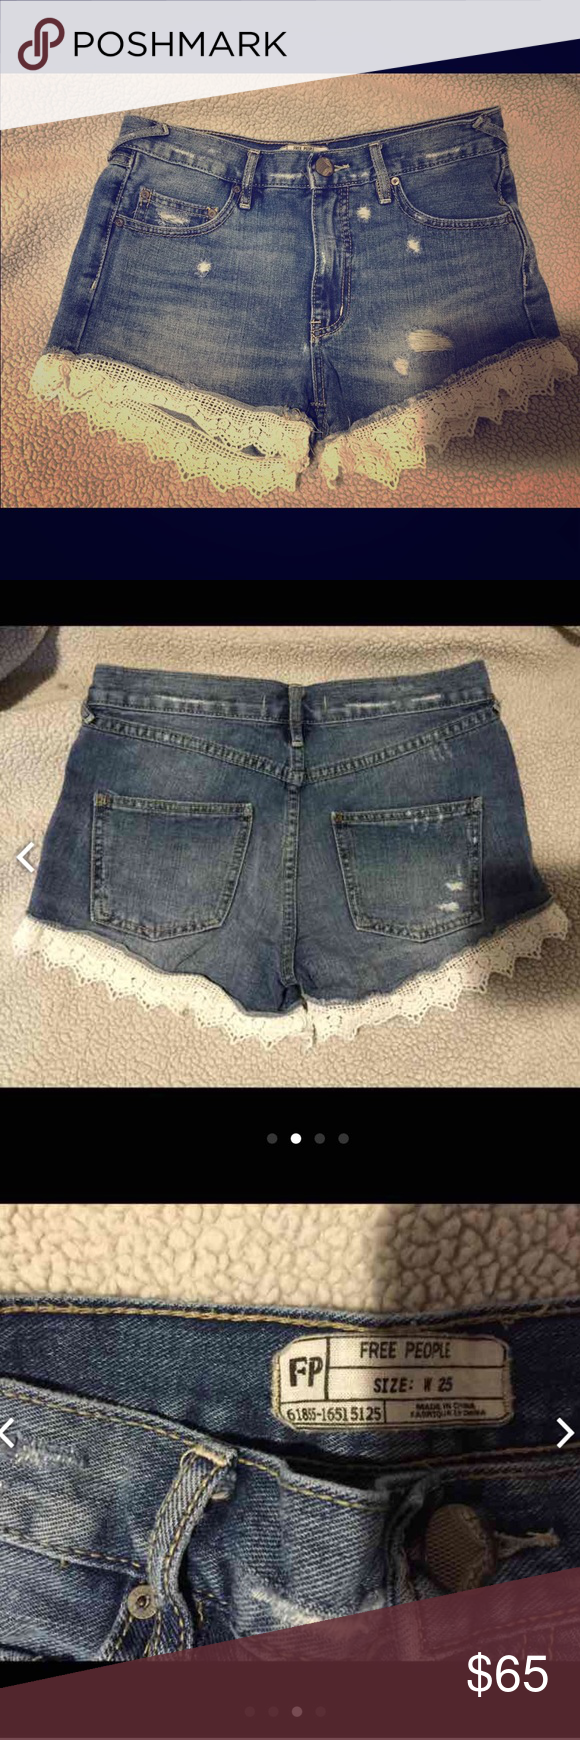 Free People Lacey Denim Cut off Shorts Size 25 Have three pairs of these free people shorts all in a size 25, I need a size up! One pair is a shade lighter, another pair is the same shade. If you want a better deal ask for me for my ♏️ercari account. Free People Shorts Jean Shorts